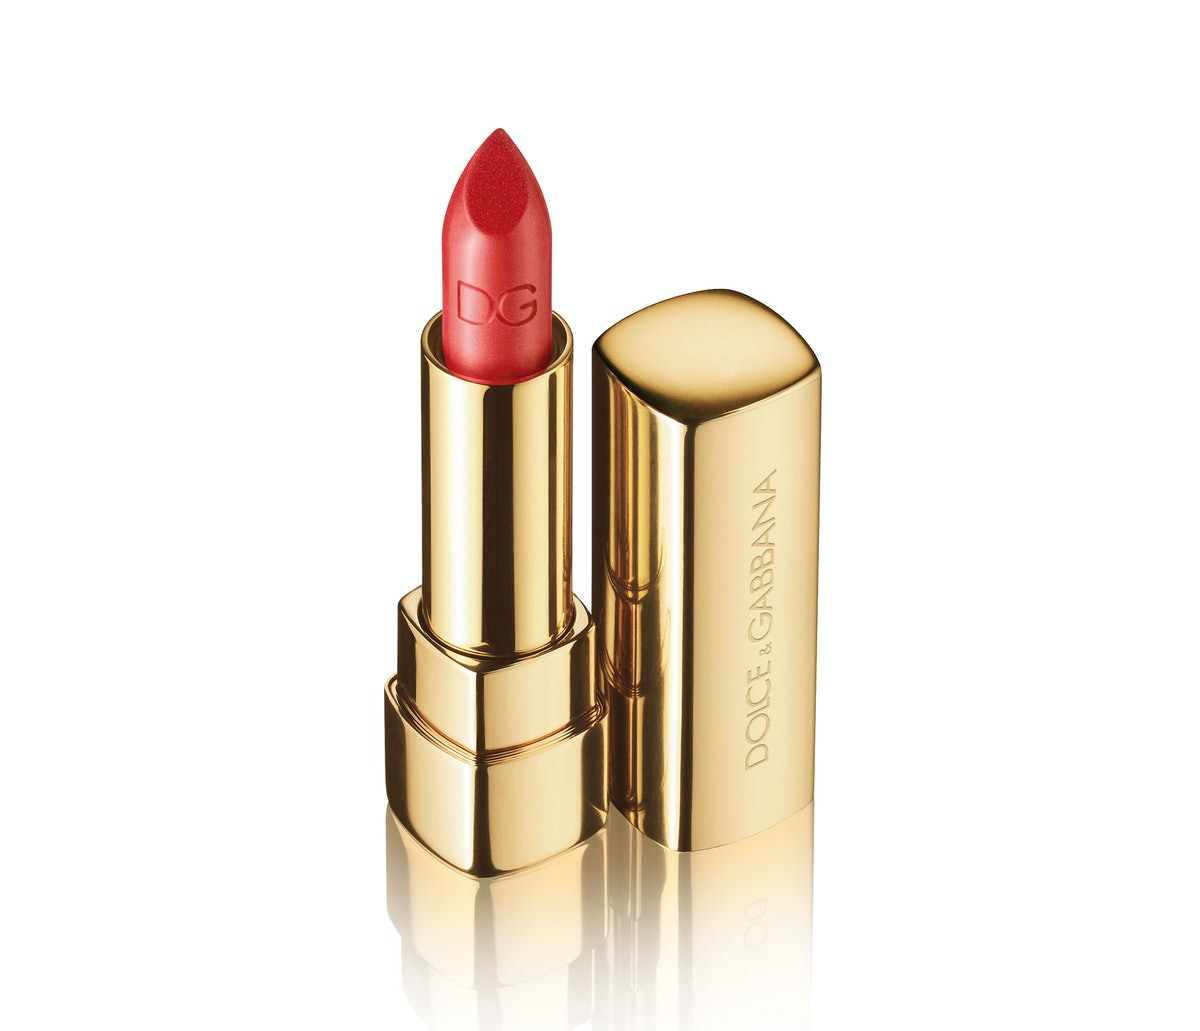 Dolce and Gabbana Lipstick in Fire